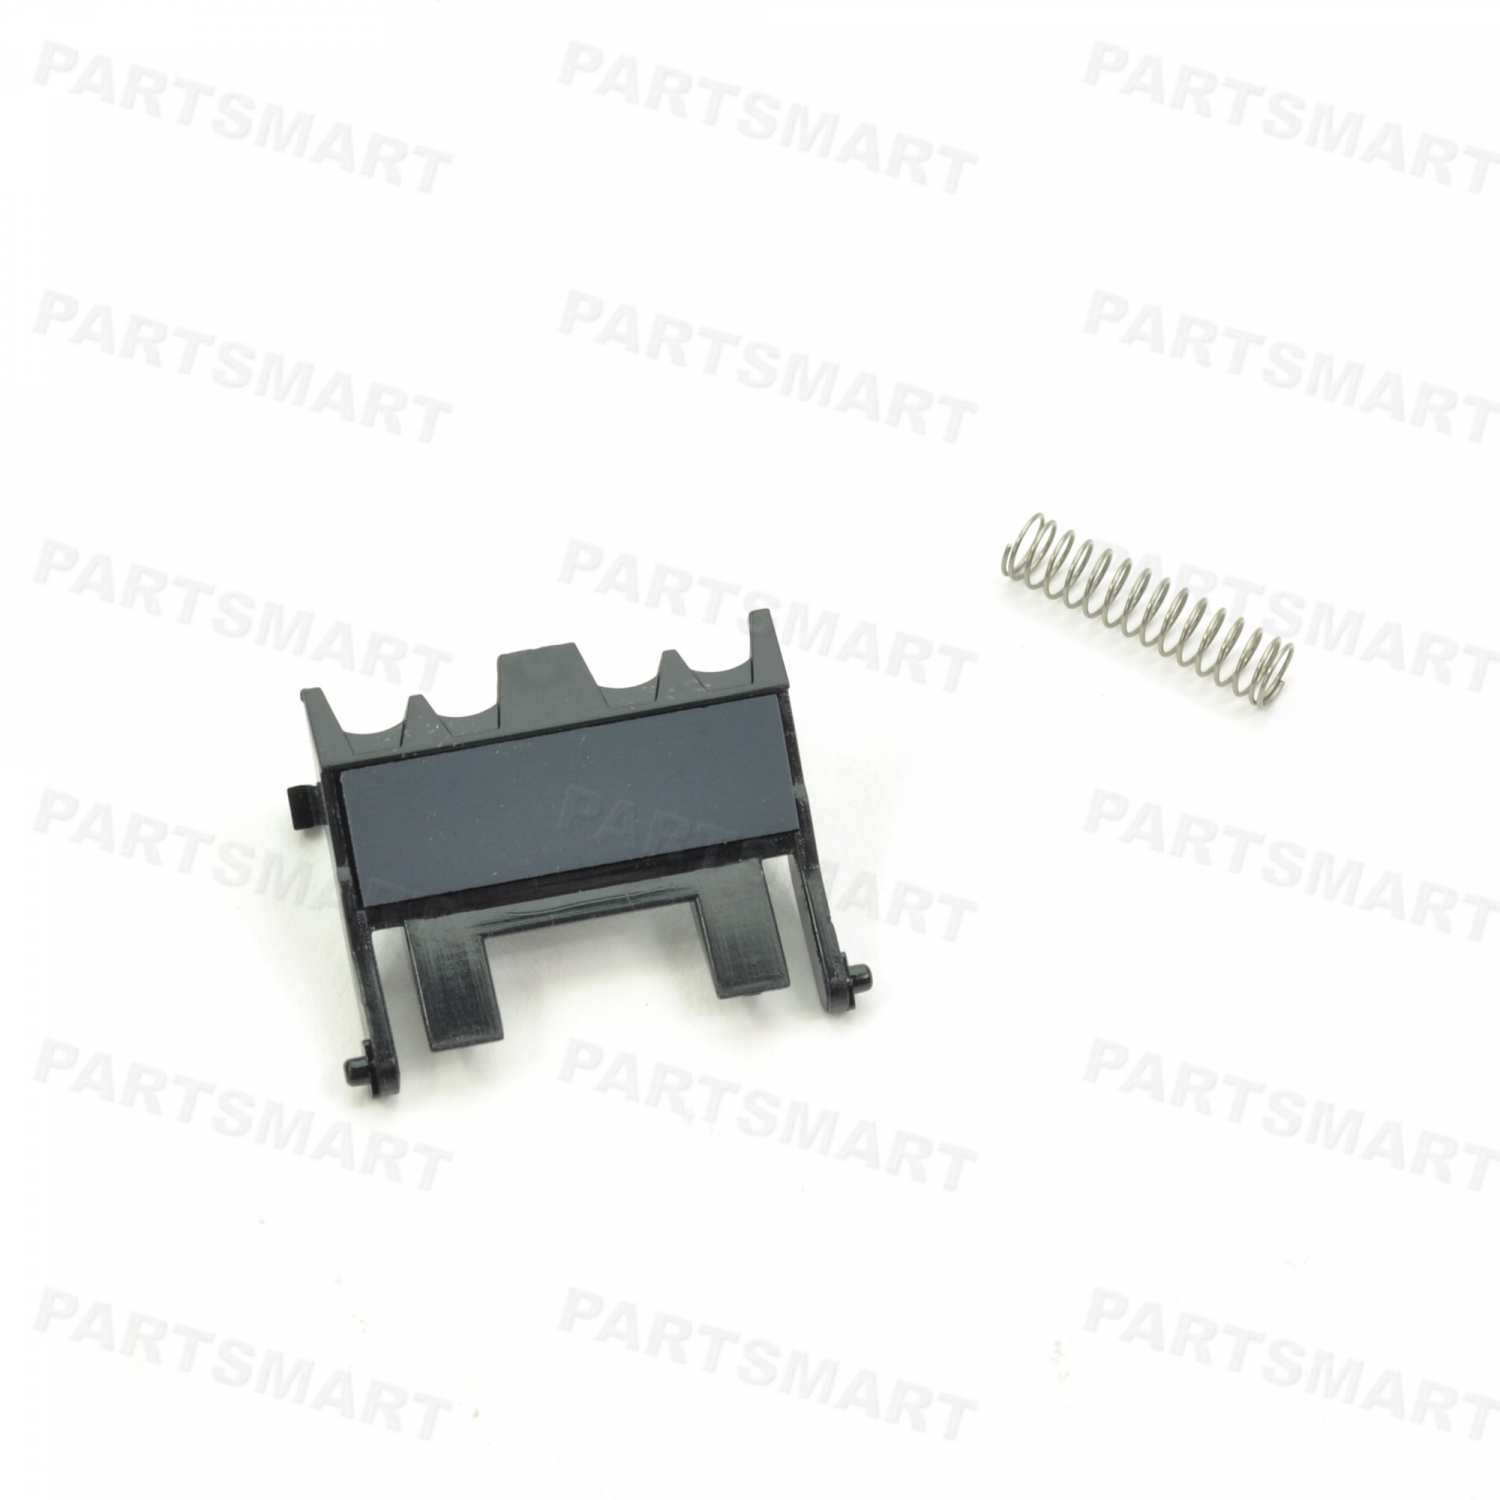 LY2208001 Separation Pad Assy for Brother DCP-7060D